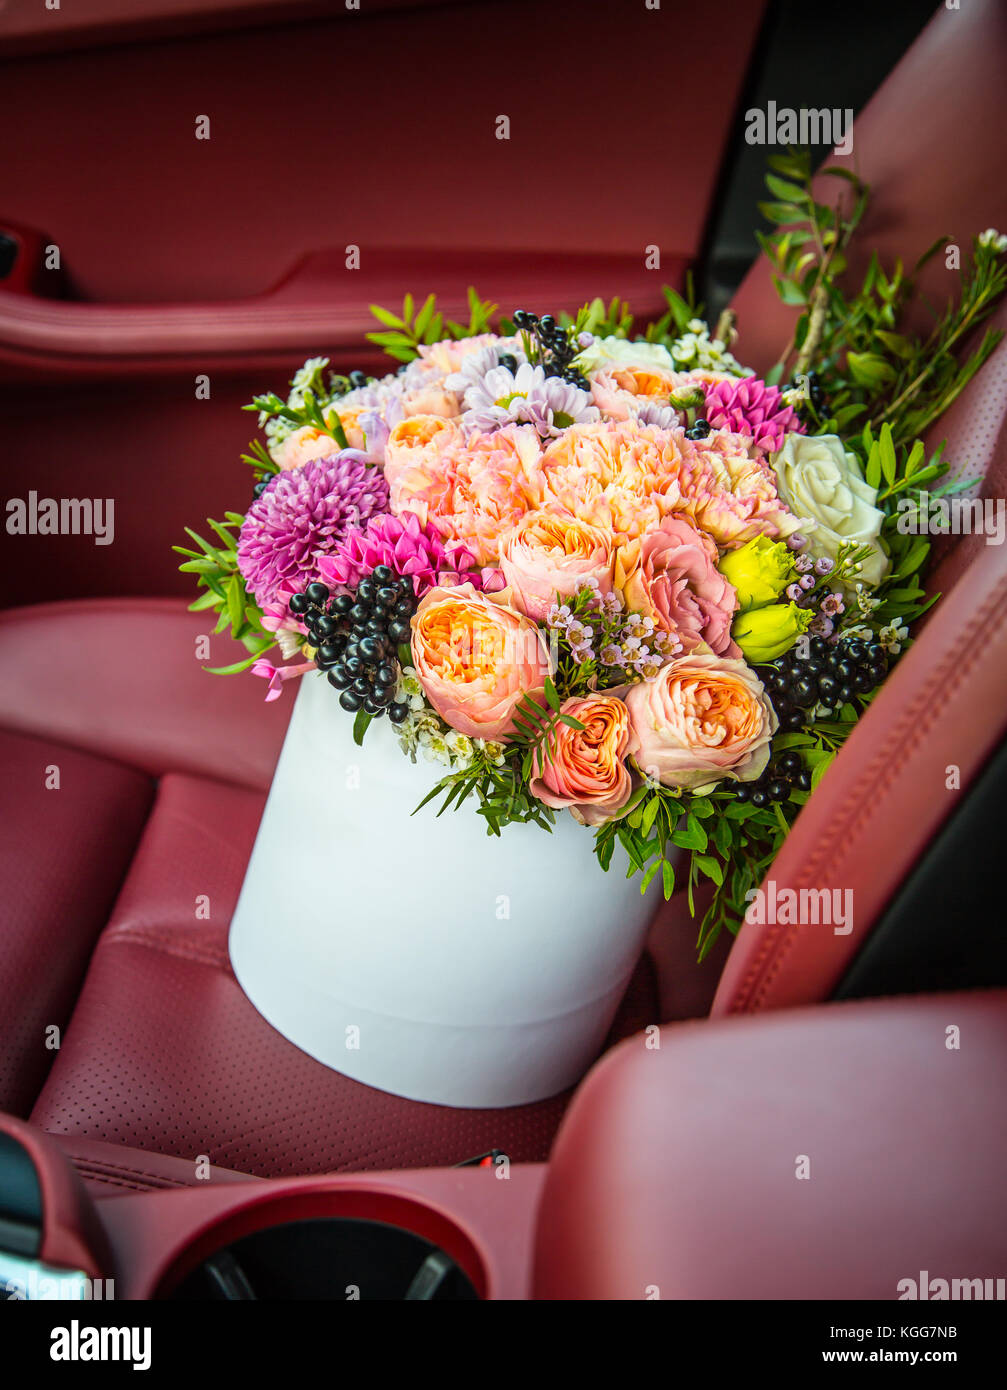 Bouquet of flowers roses luxury gift box in the car seat stock photo bouquet of flowers roses luxury gift box in the car seat mightylinksfo